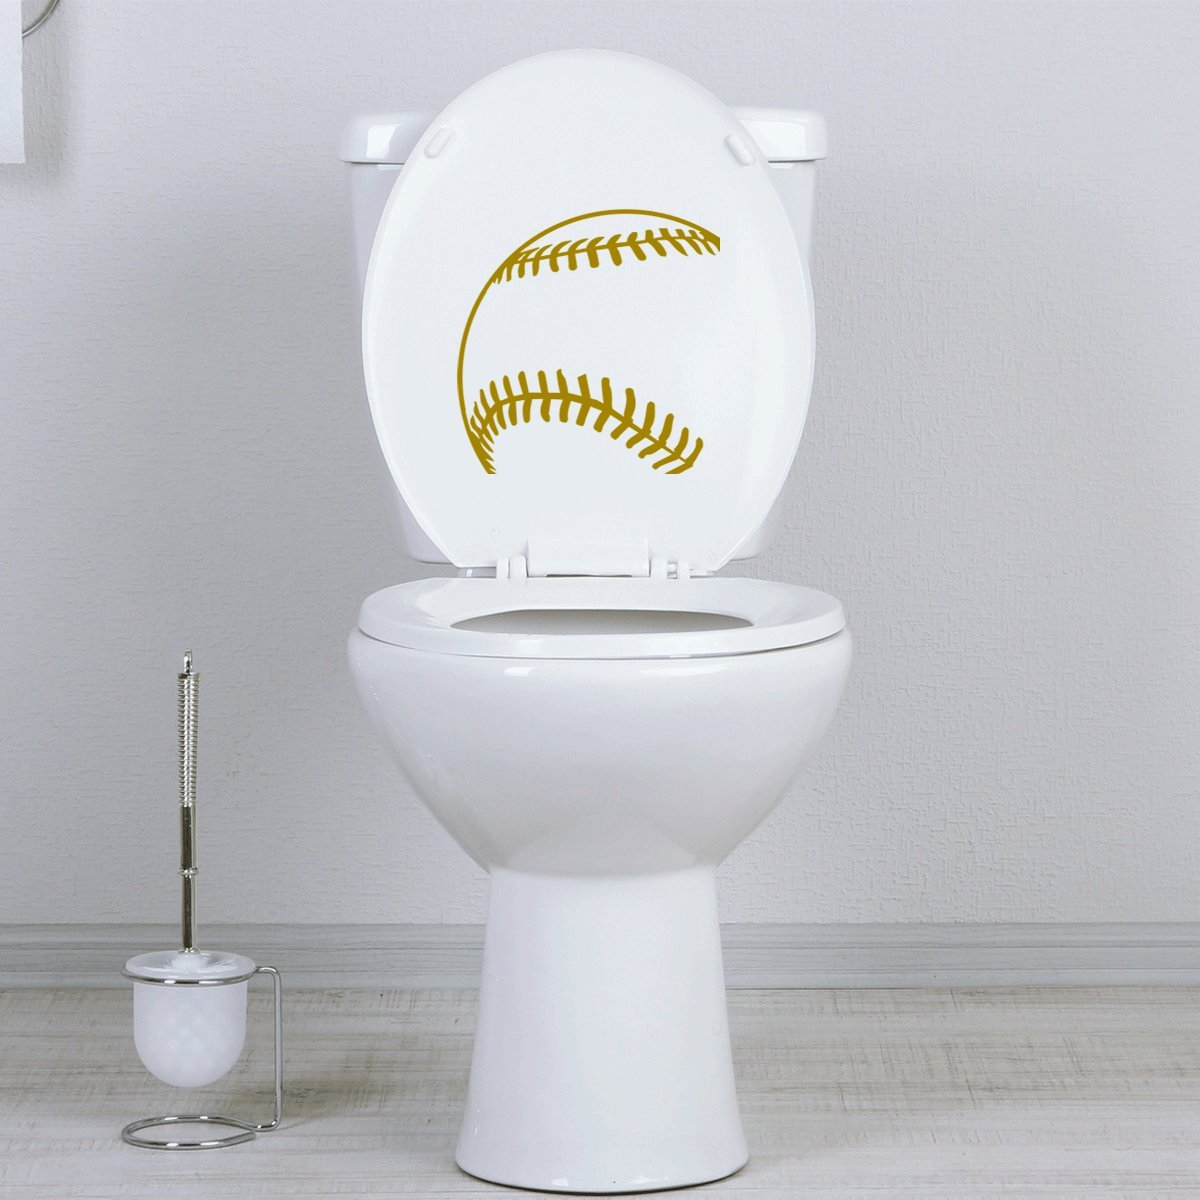 Awesome Stickany Bathroom Decal Series Baseball Corner Sticker For Toilet Bowl Bath Seat Black Beatyapartments Chair Design Images Beatyapartmentscom